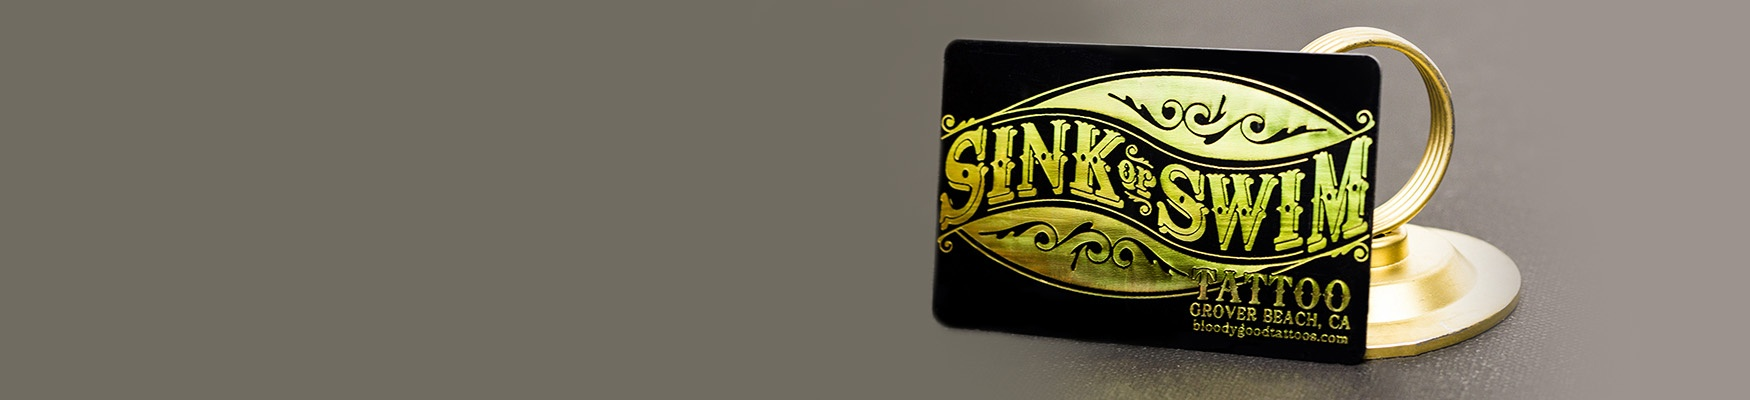 Example of Gold Foil Sink or Swim Tattoo Business Card